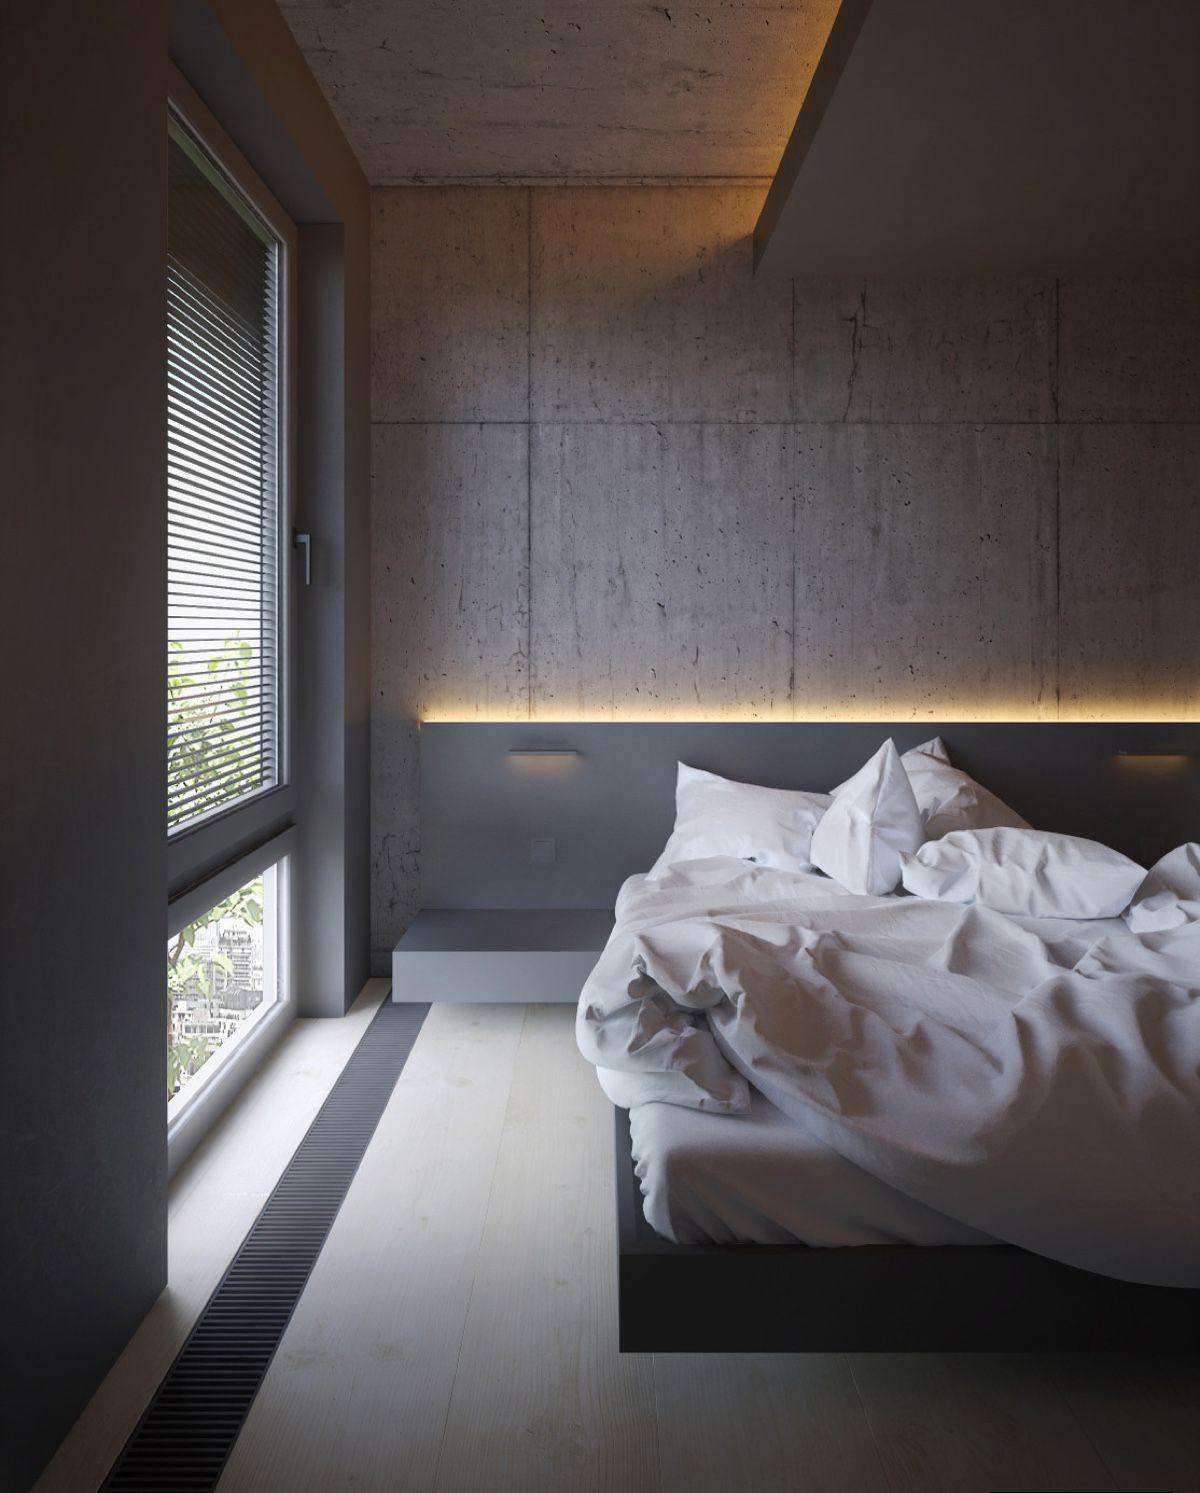 Attractive In The Bedroom, Granite Walls Behind Illuminated Headboards Add Interest  Without Clutter. Another Low Lying Bed Design, Soft White Bedding And An  Opaque ...